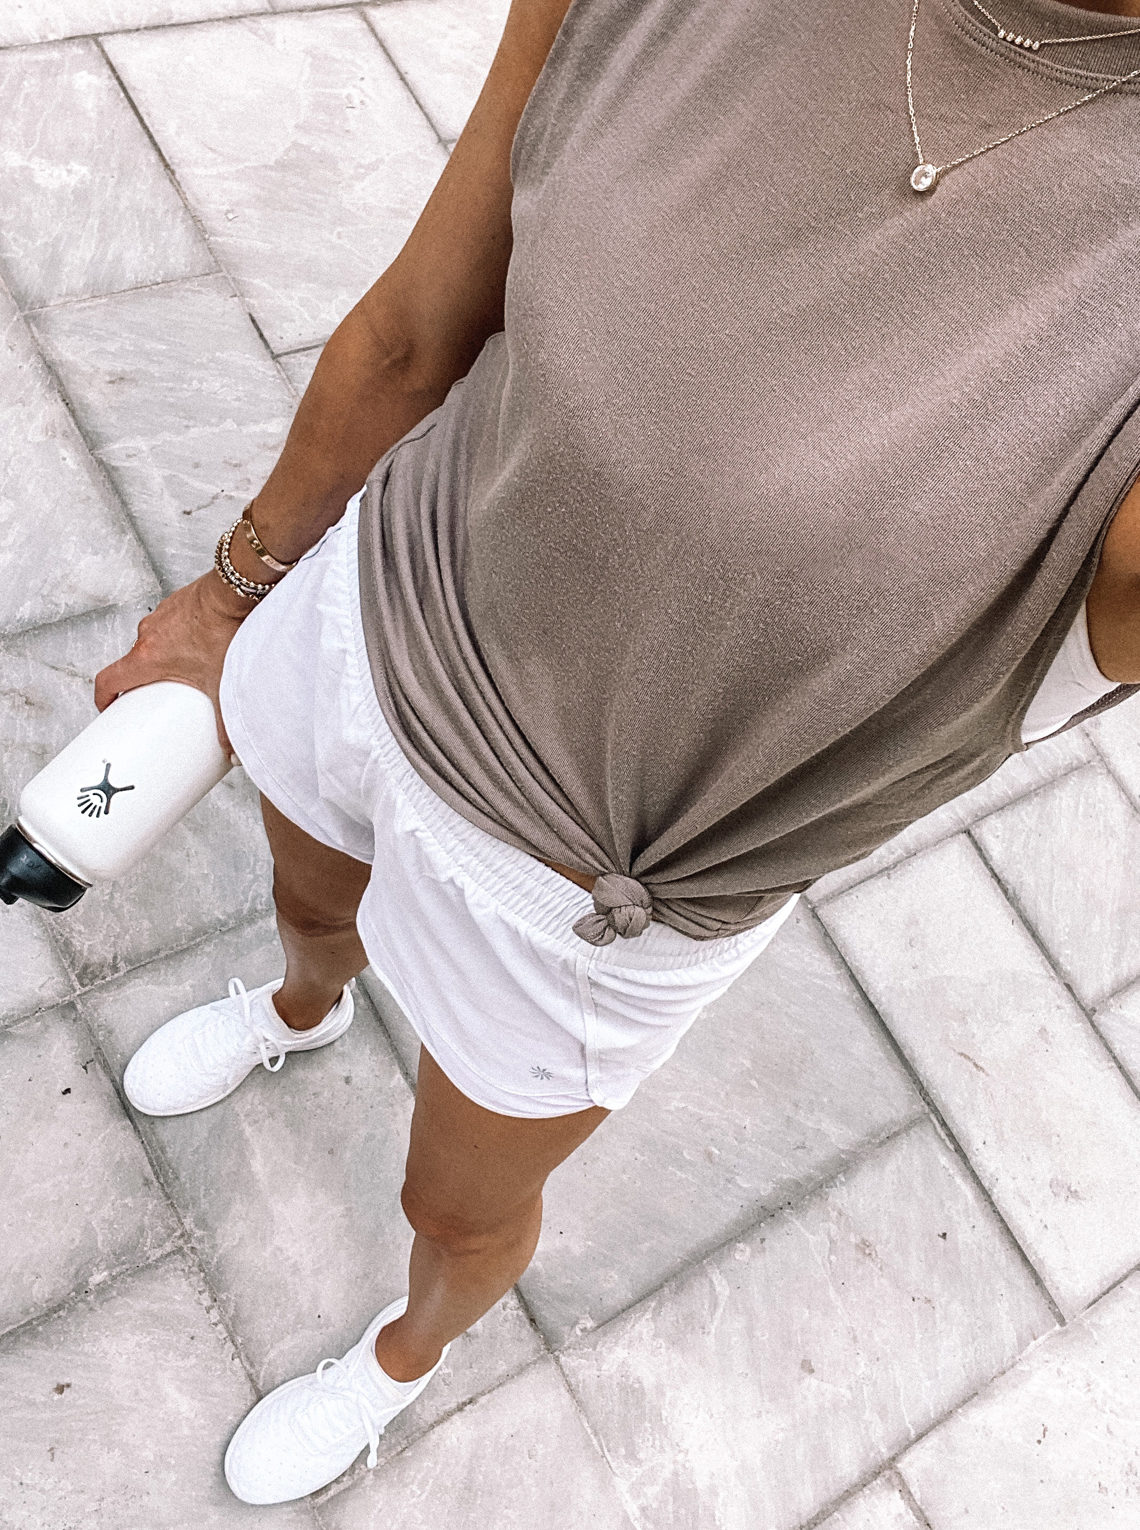 Fashion Jackson Wearing Athleta Tank White Shorts White APL Sneakers